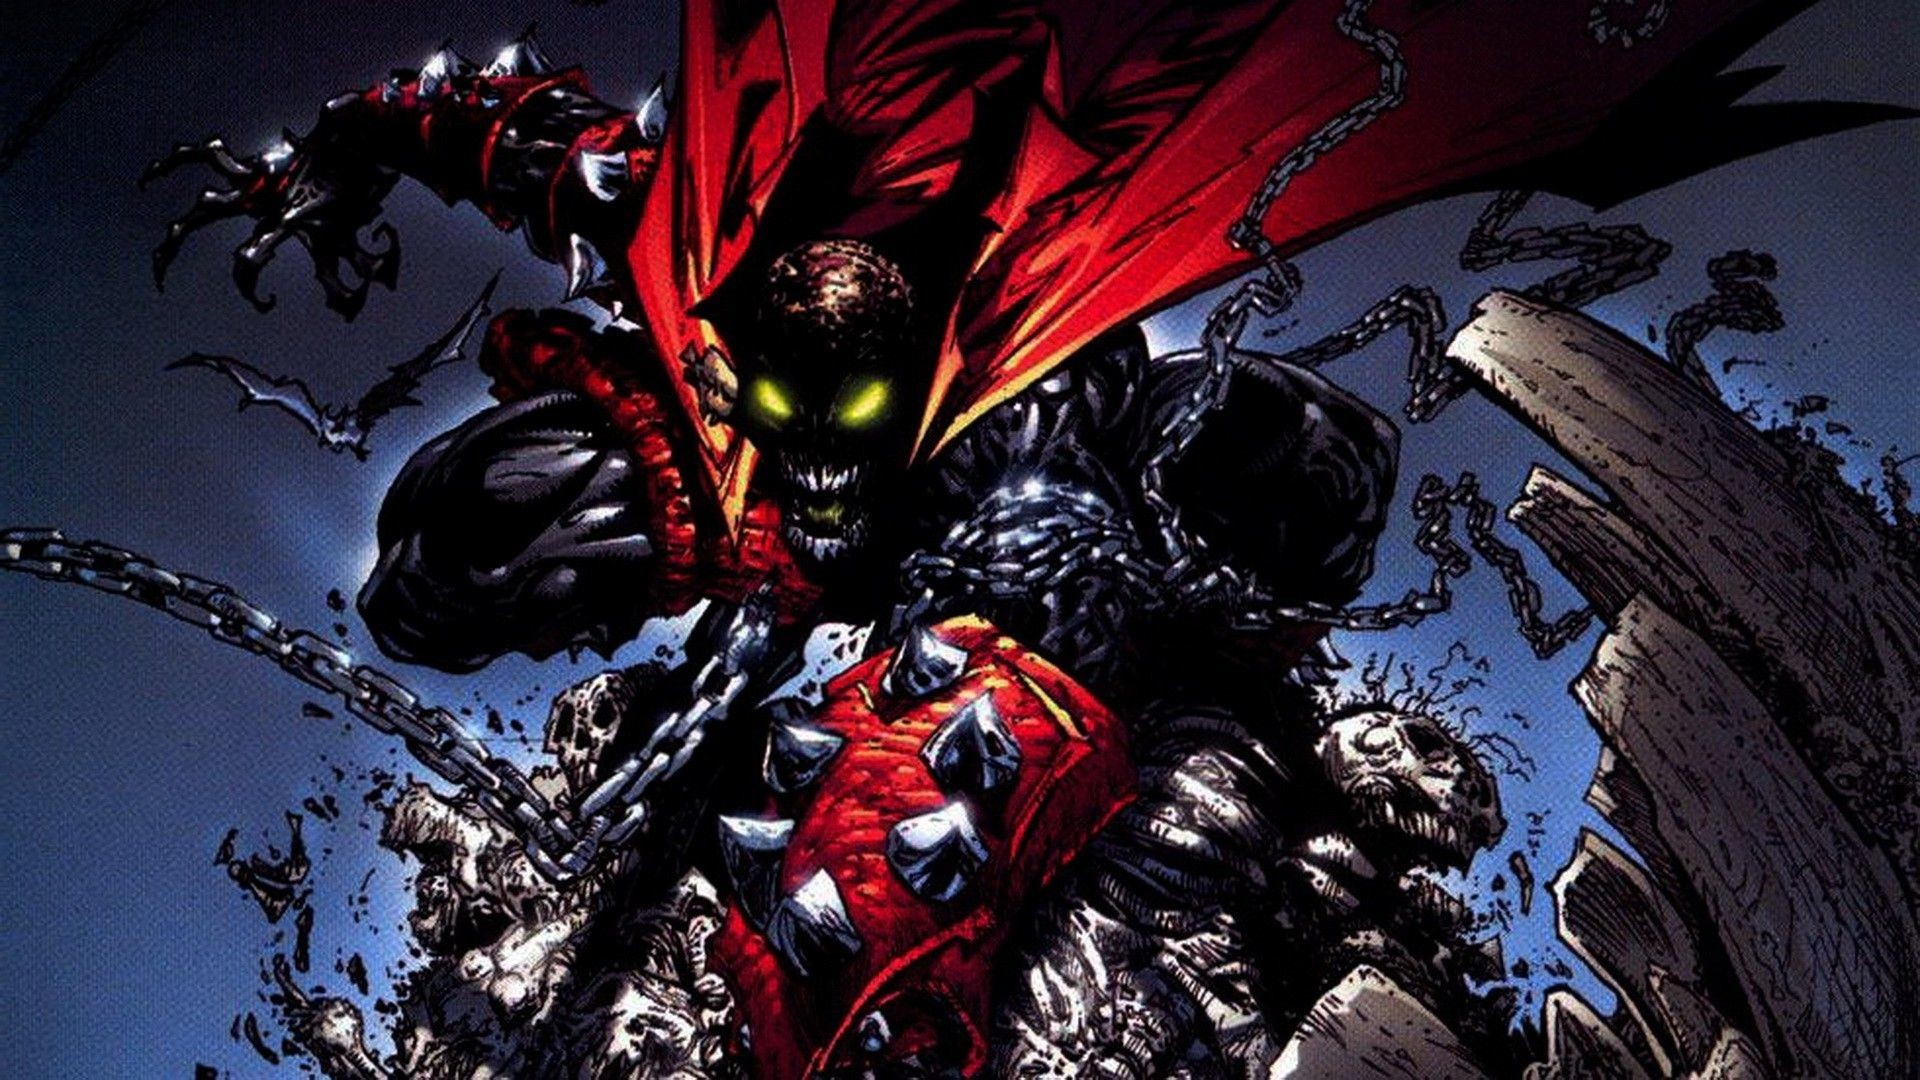 Res: 1920x1080, Spawn Wallpapers Hd Resolution